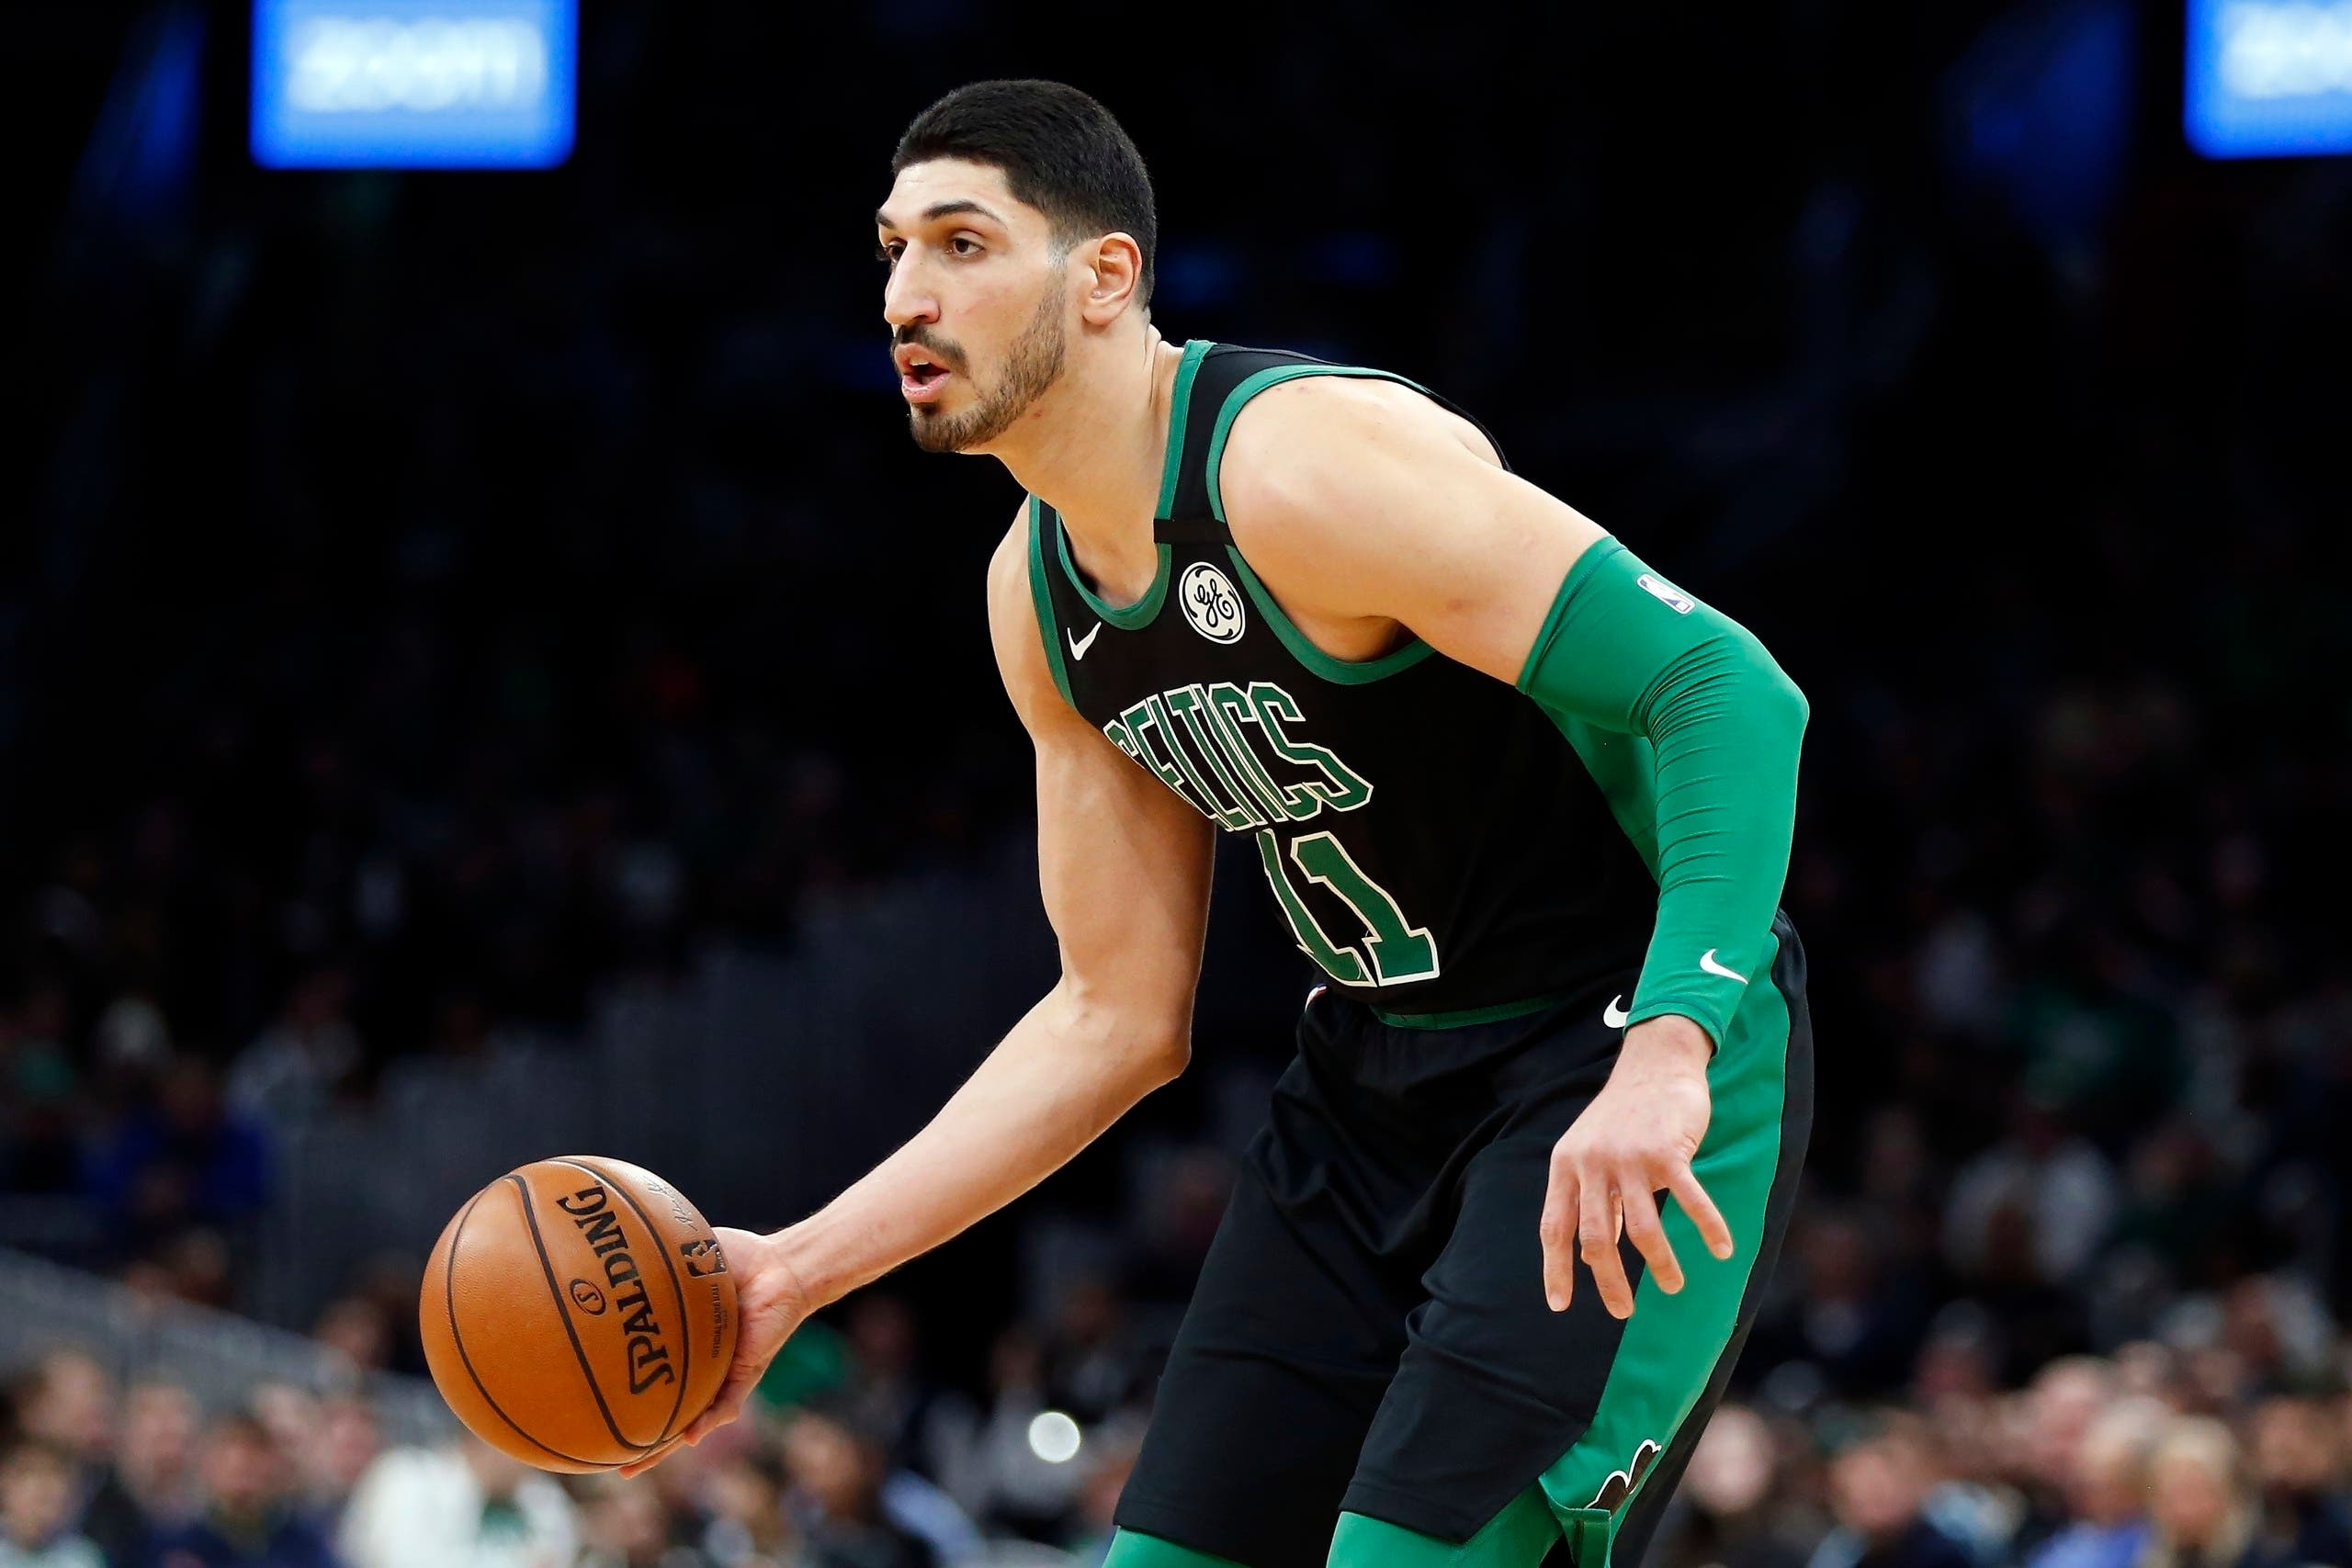 Boston Celtics' Enes Kanter during the first half of an NBA basketball game on March, 8, 2020, in Boston. (AP)